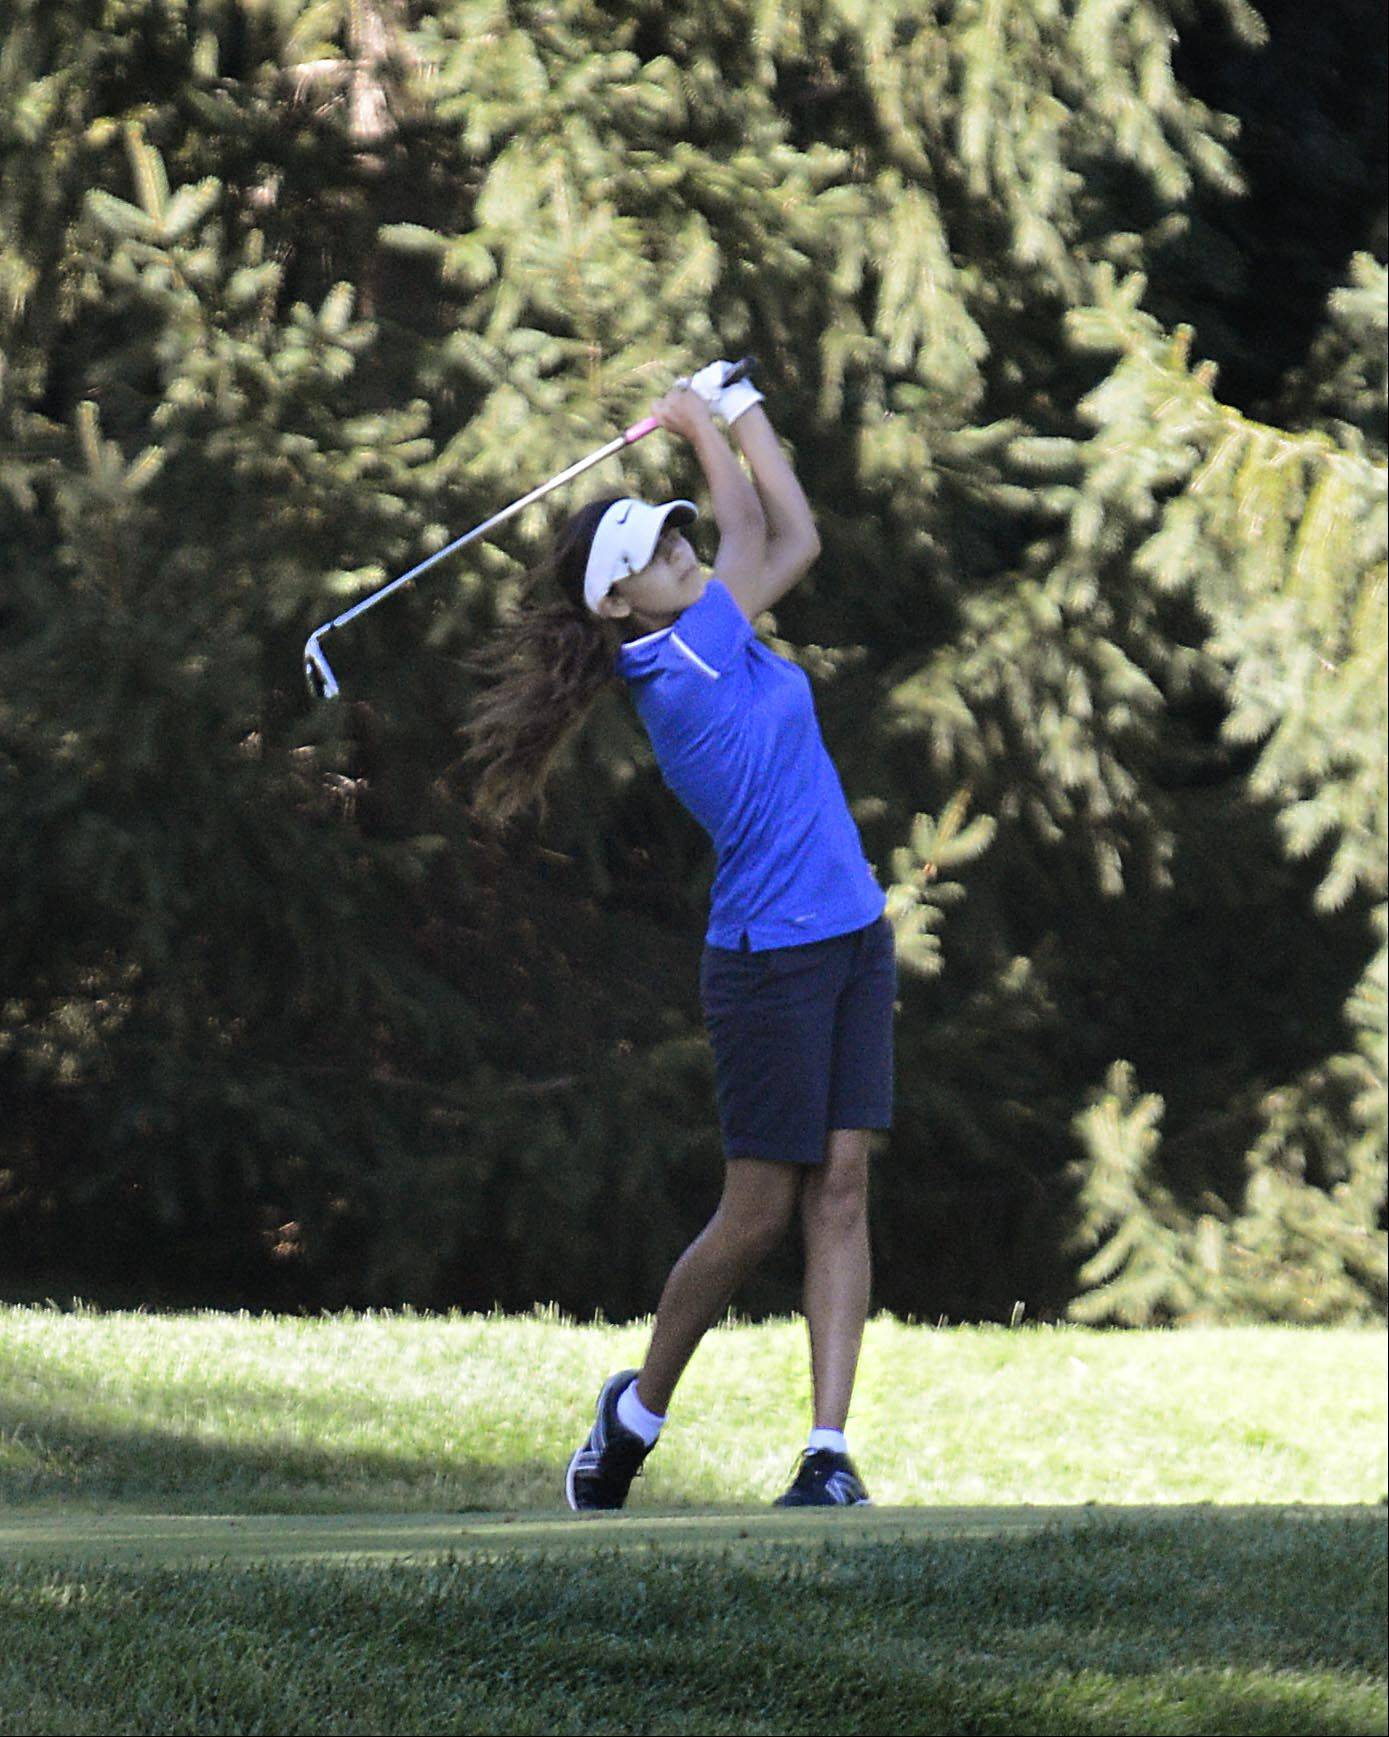 Burlington Central's Jenna Kurosky tees off on No. 9 Monday at the Elgin Country Club girls golf invitational.